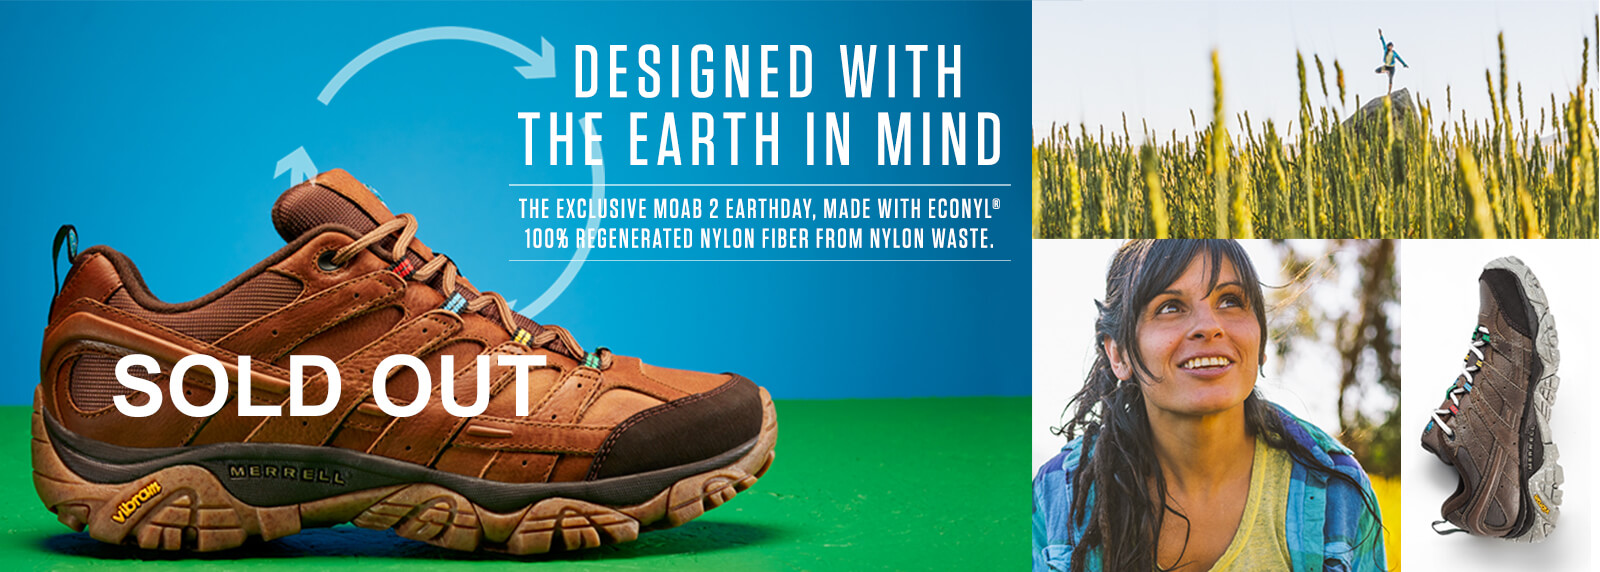 Designed with the Earth in mind. The exclusive Moab 2 Earthday, made with Econyl® 100% regenerated nylon fiber from nylon waste.